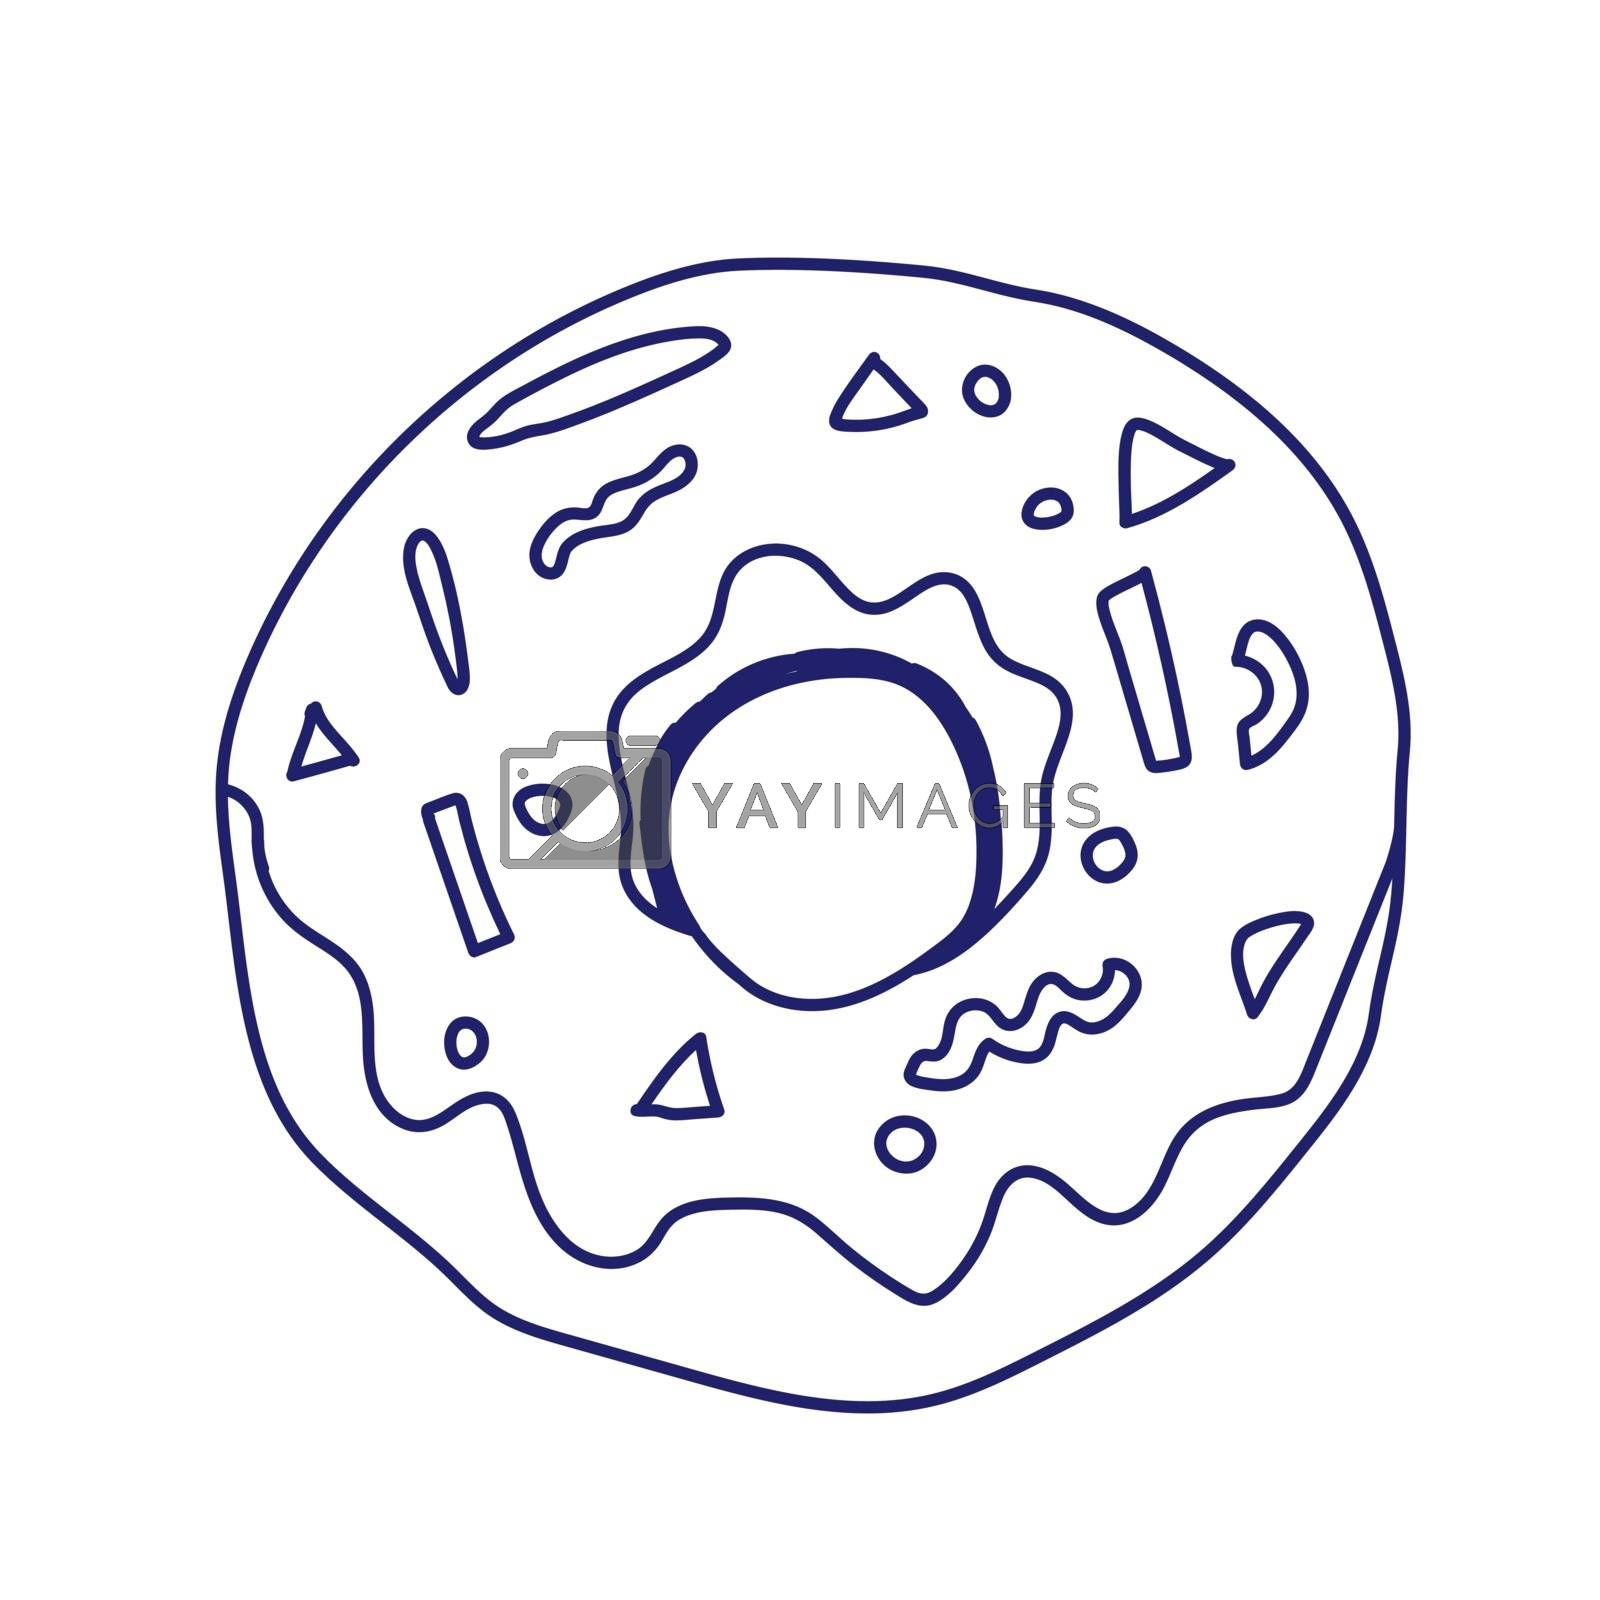 Donut isolated on white background. Vector illustration in a doodle style. Line art. Perfect for restaurant menu design, cafe, kitchen, web site, print on the cloth. Appetizing food image